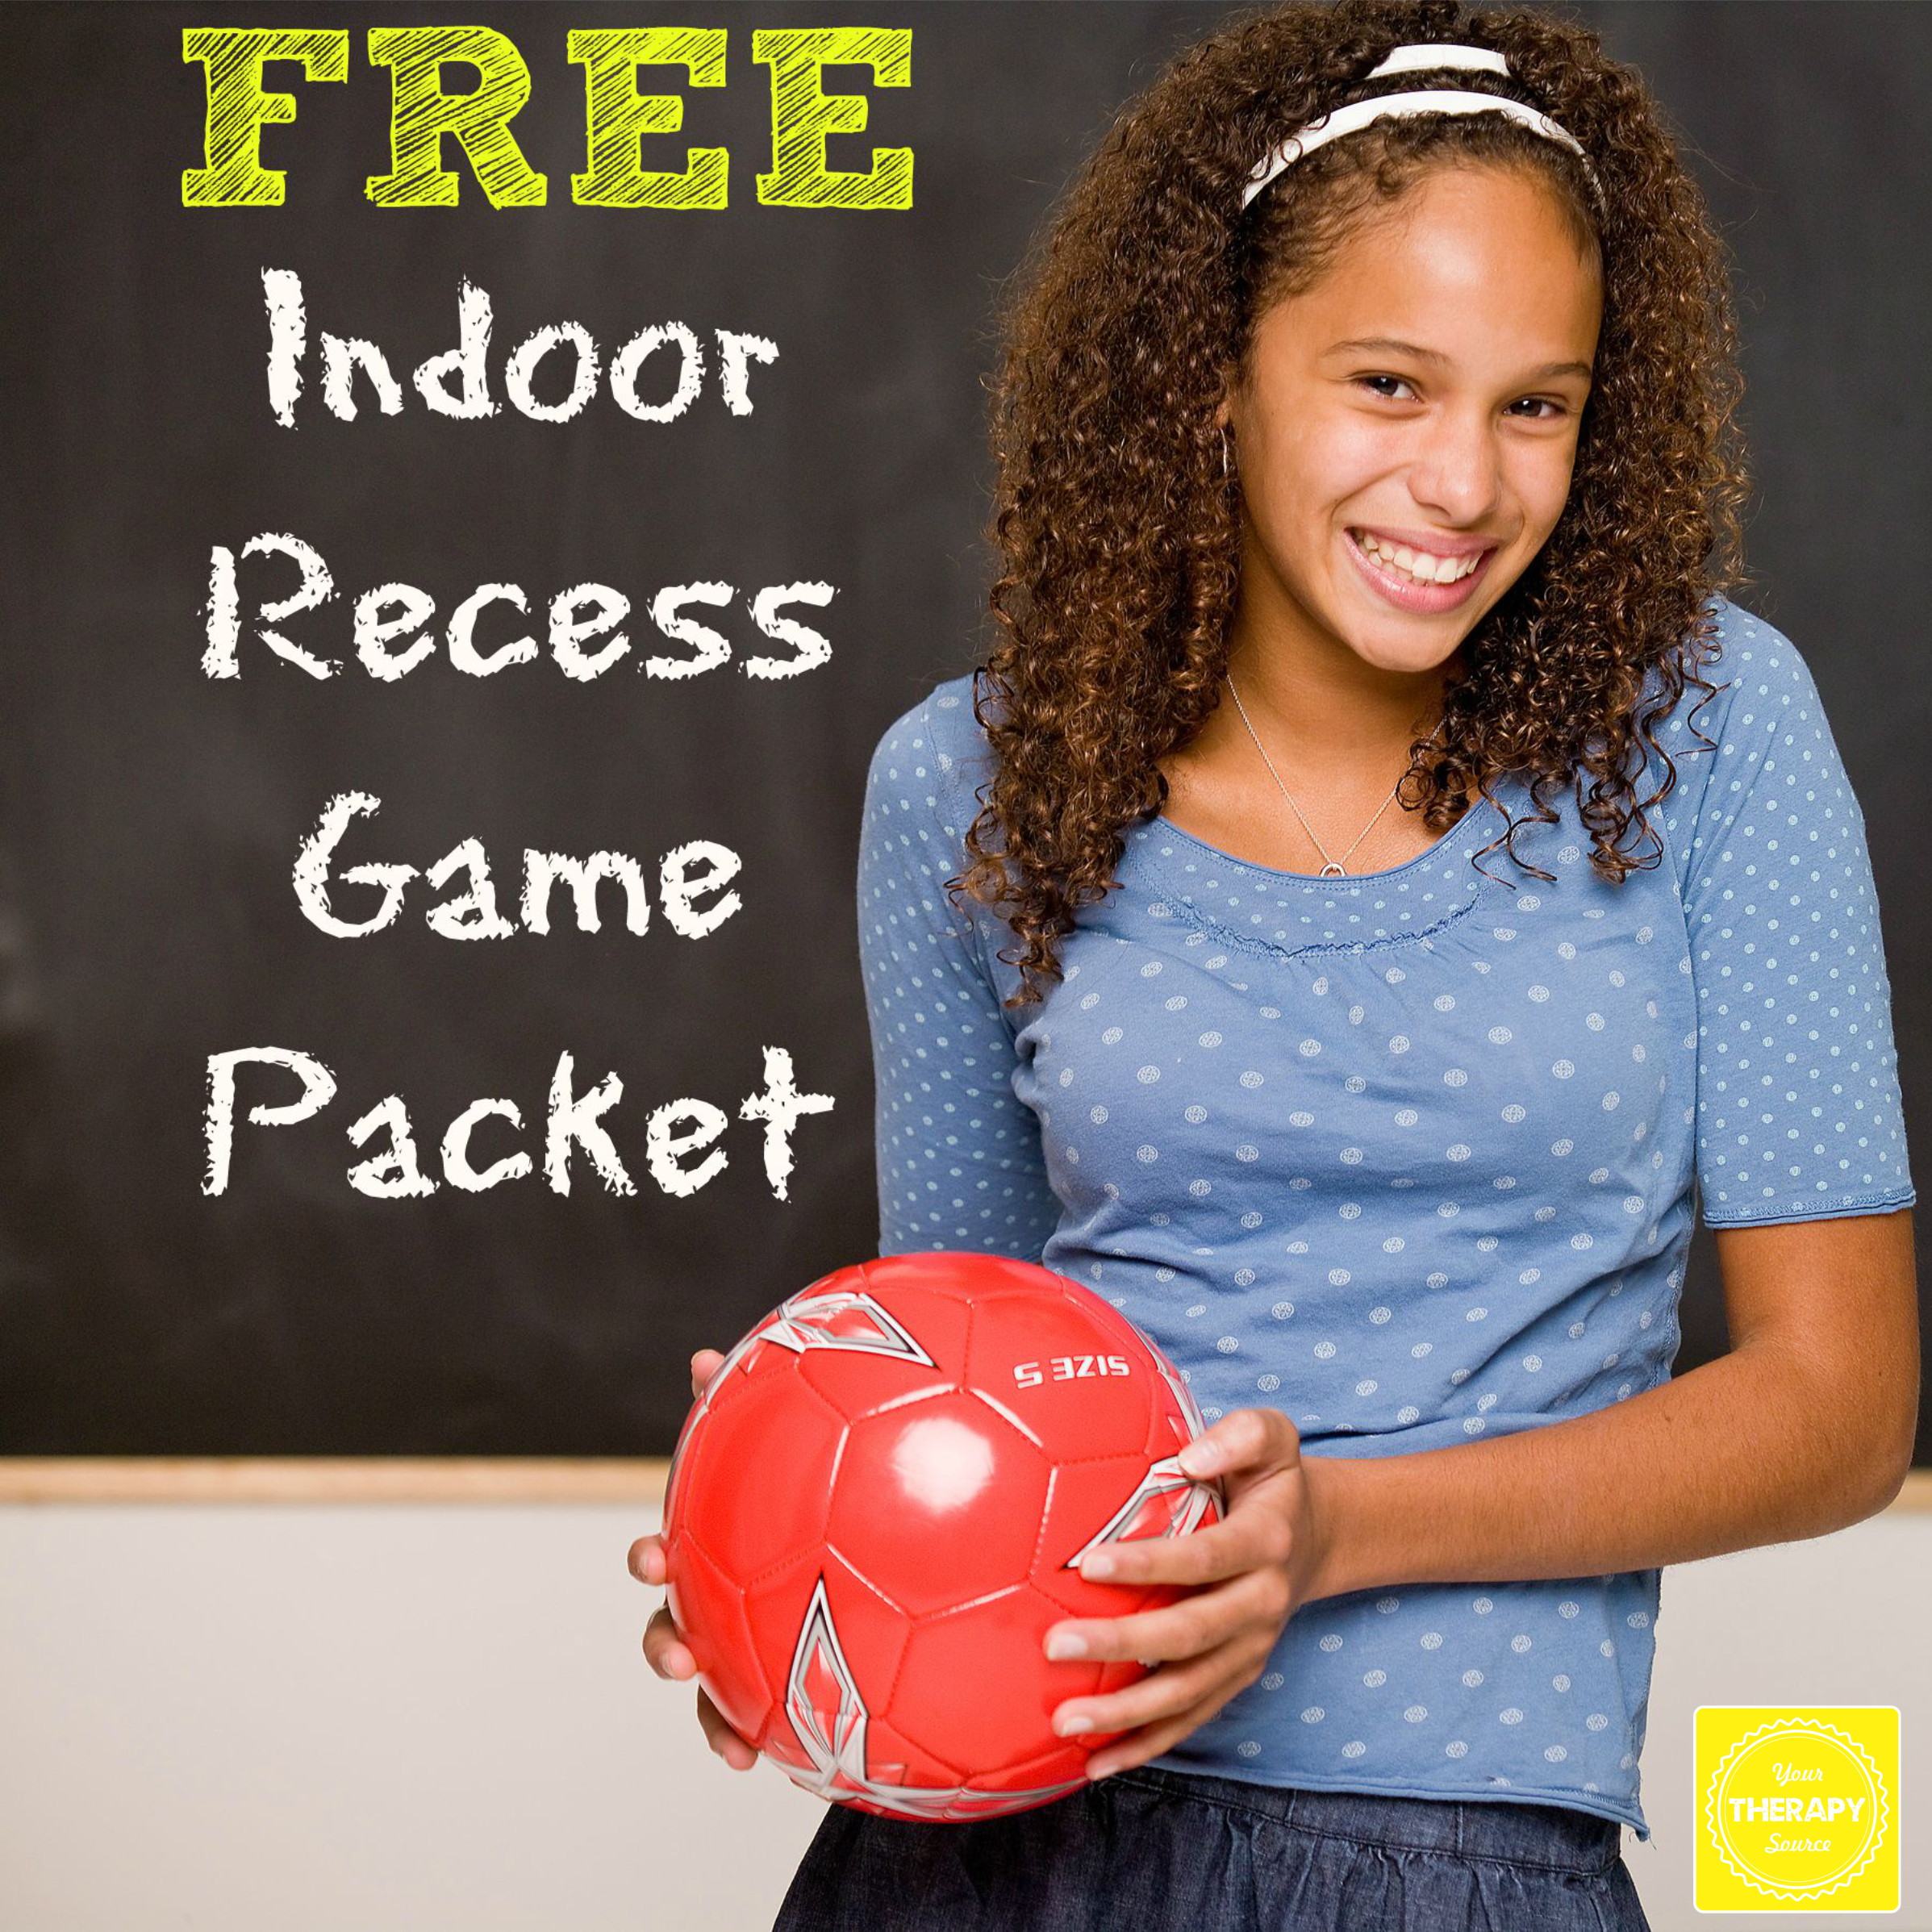 Indoor Recess Packet from https://www.yourtherapysource.com/indoorrecess.html